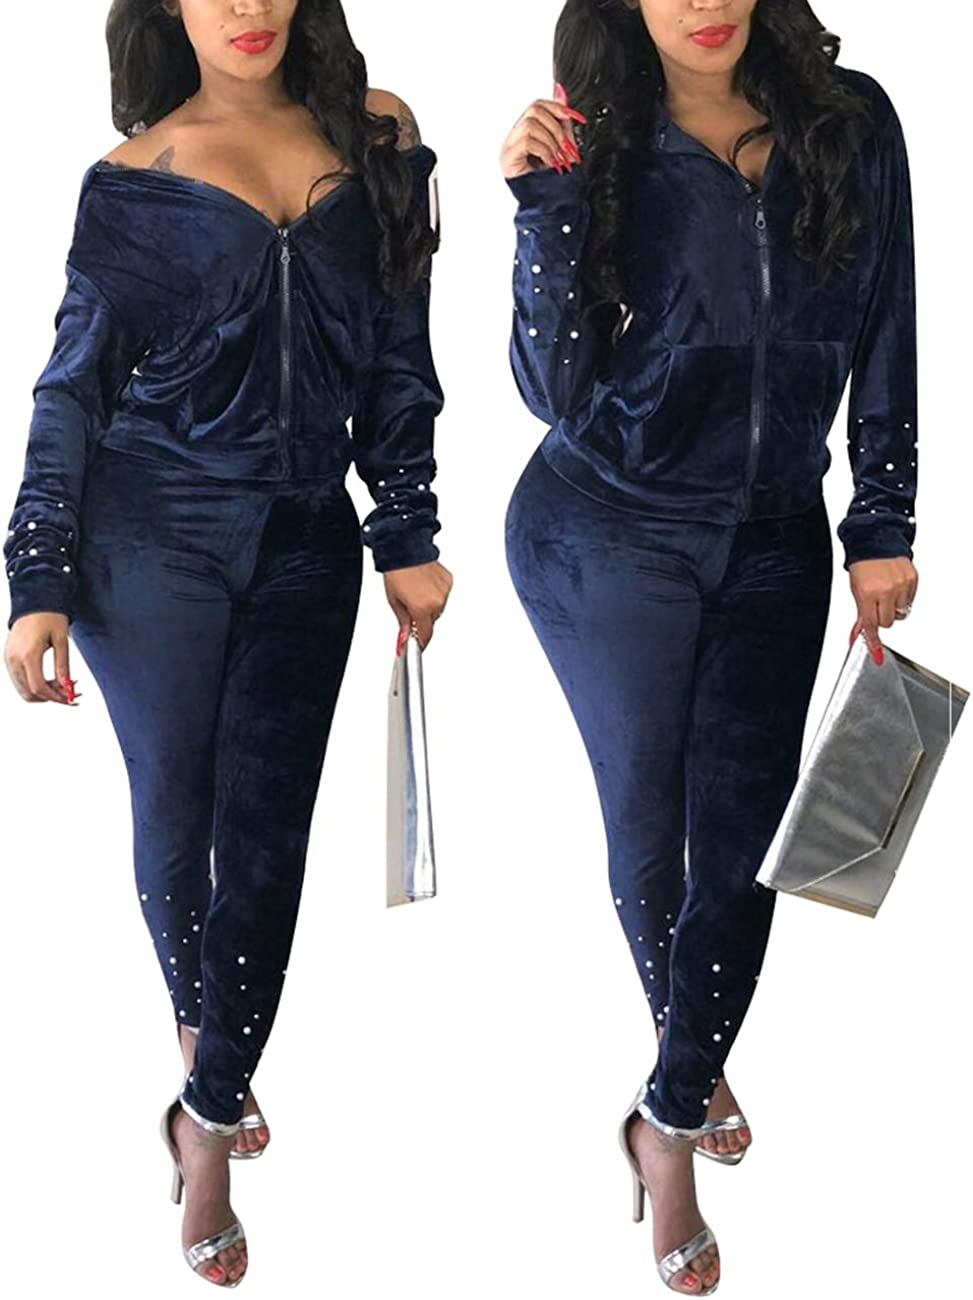 Jogging Suits Sprifloral Women Two Piece Outfits Tracksuit Velour Beads Long Sleeve Hoodie